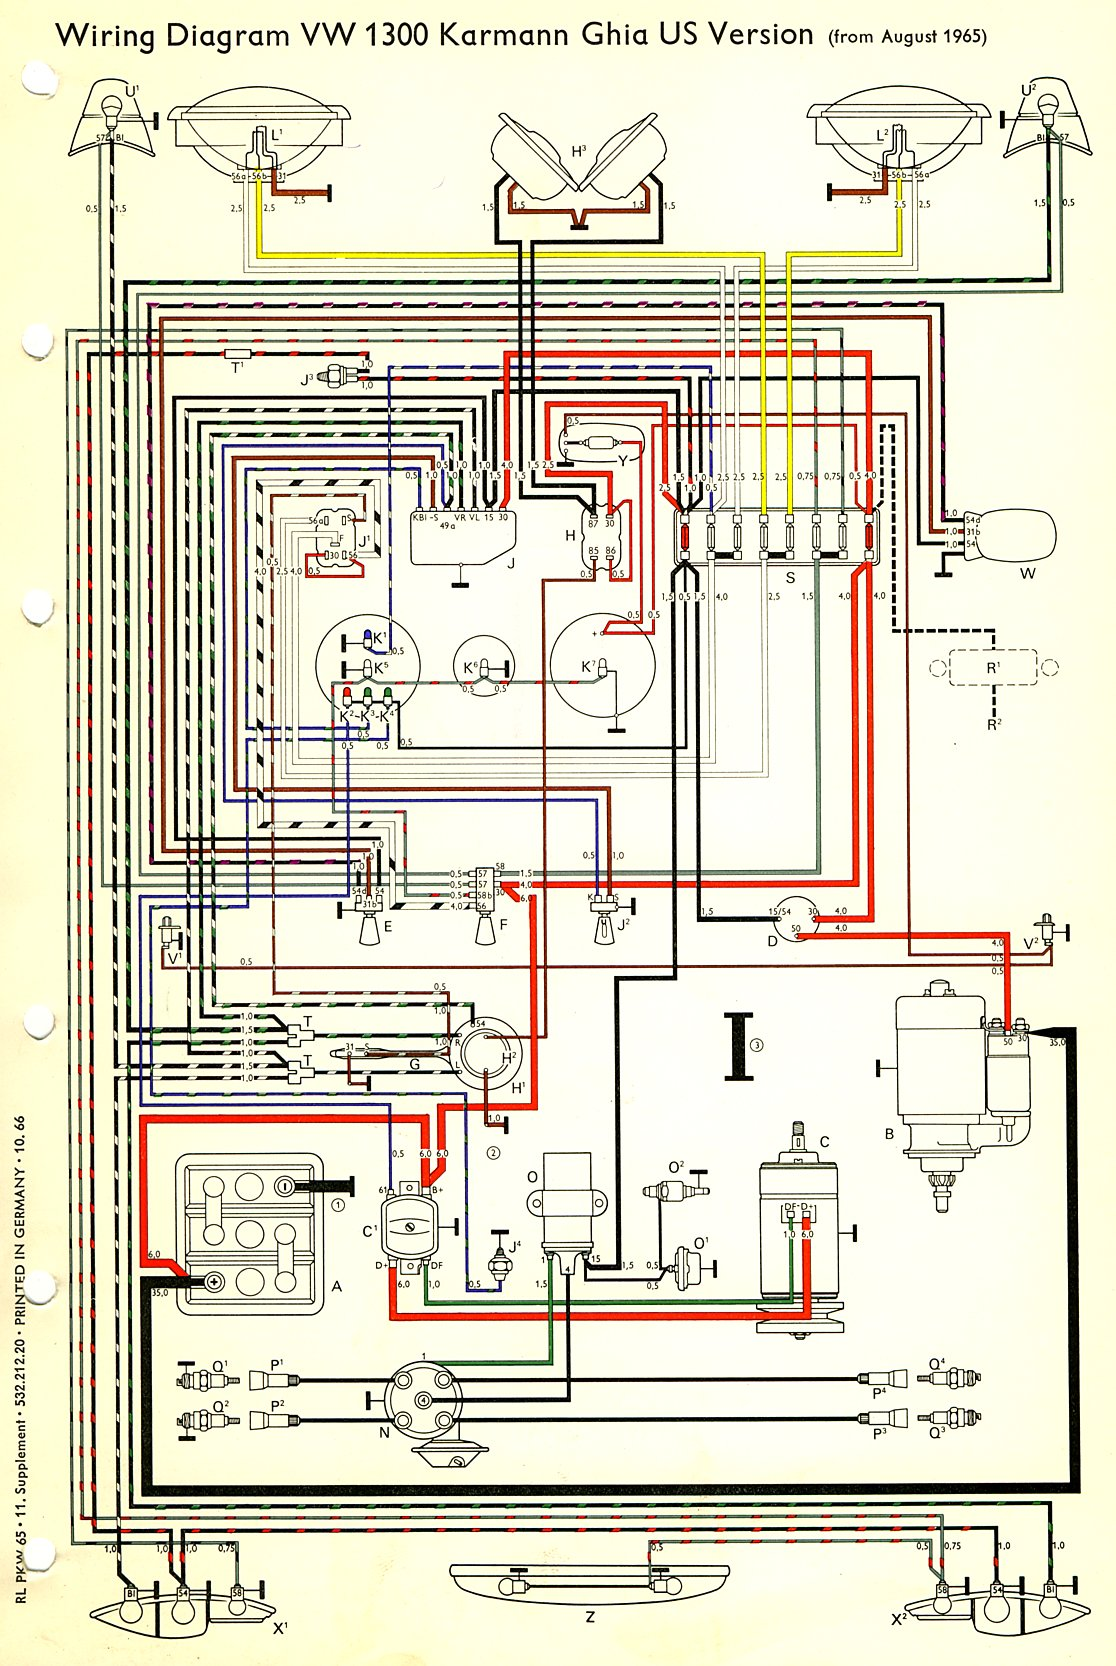 Karmann Ghia Wiring Diagrams Diagram 1974 Chevy Chevelle